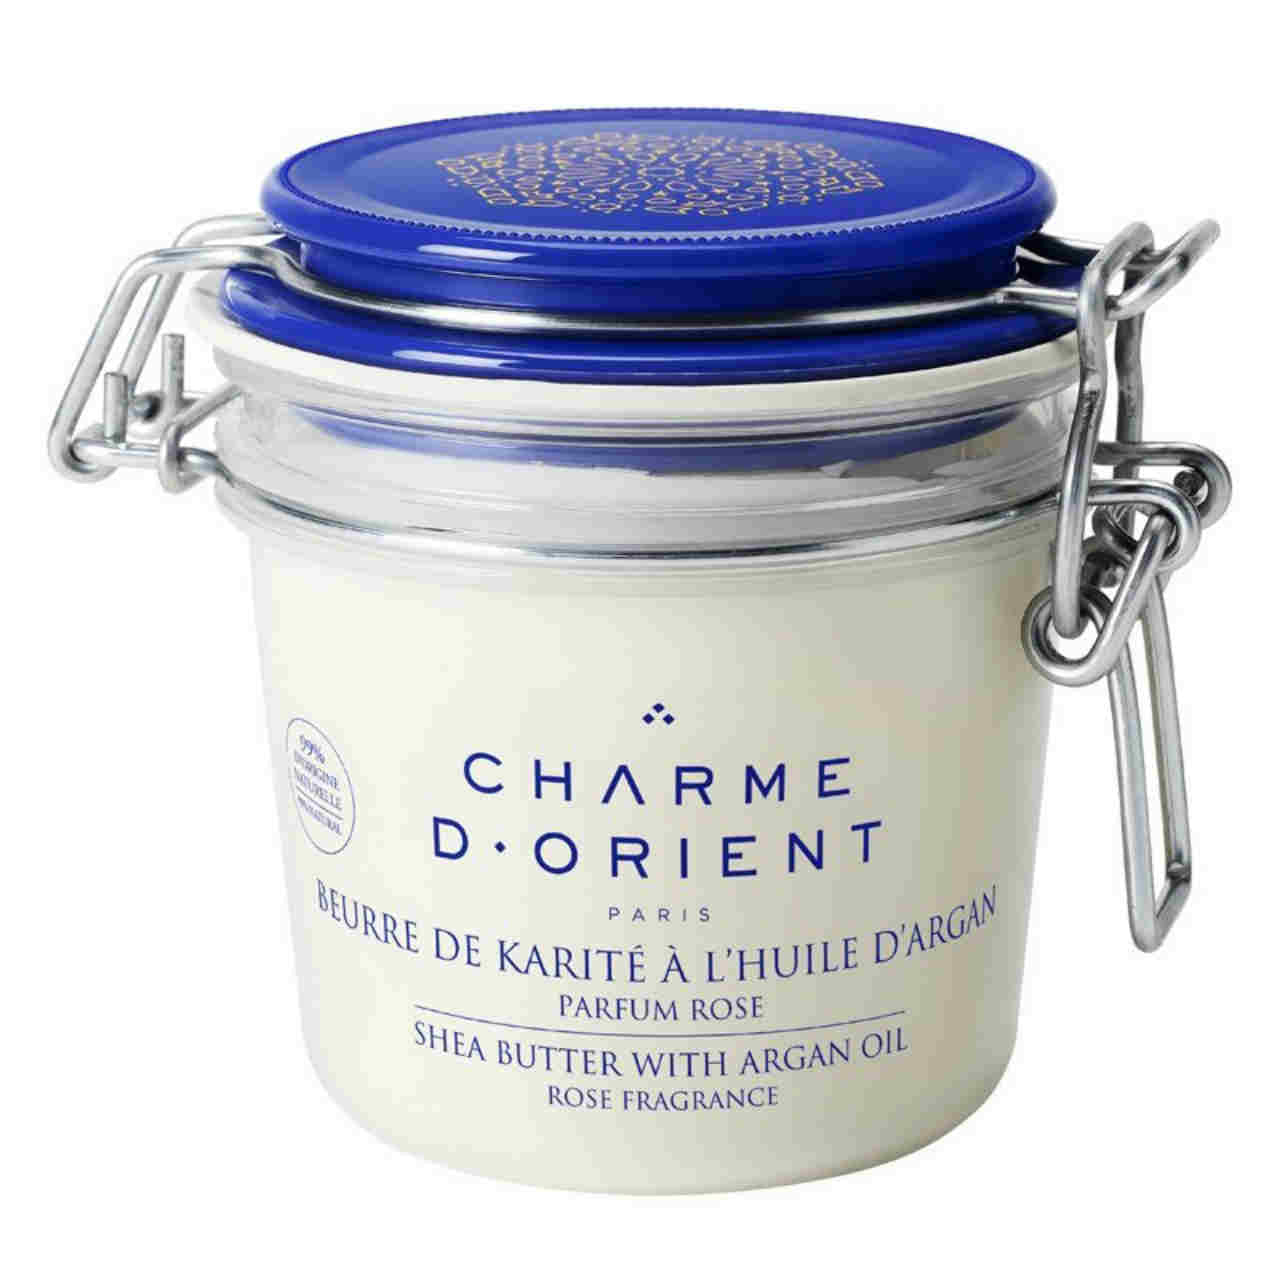 CHARME D'ORIENT Shea Butter with Argan Oil - Rose